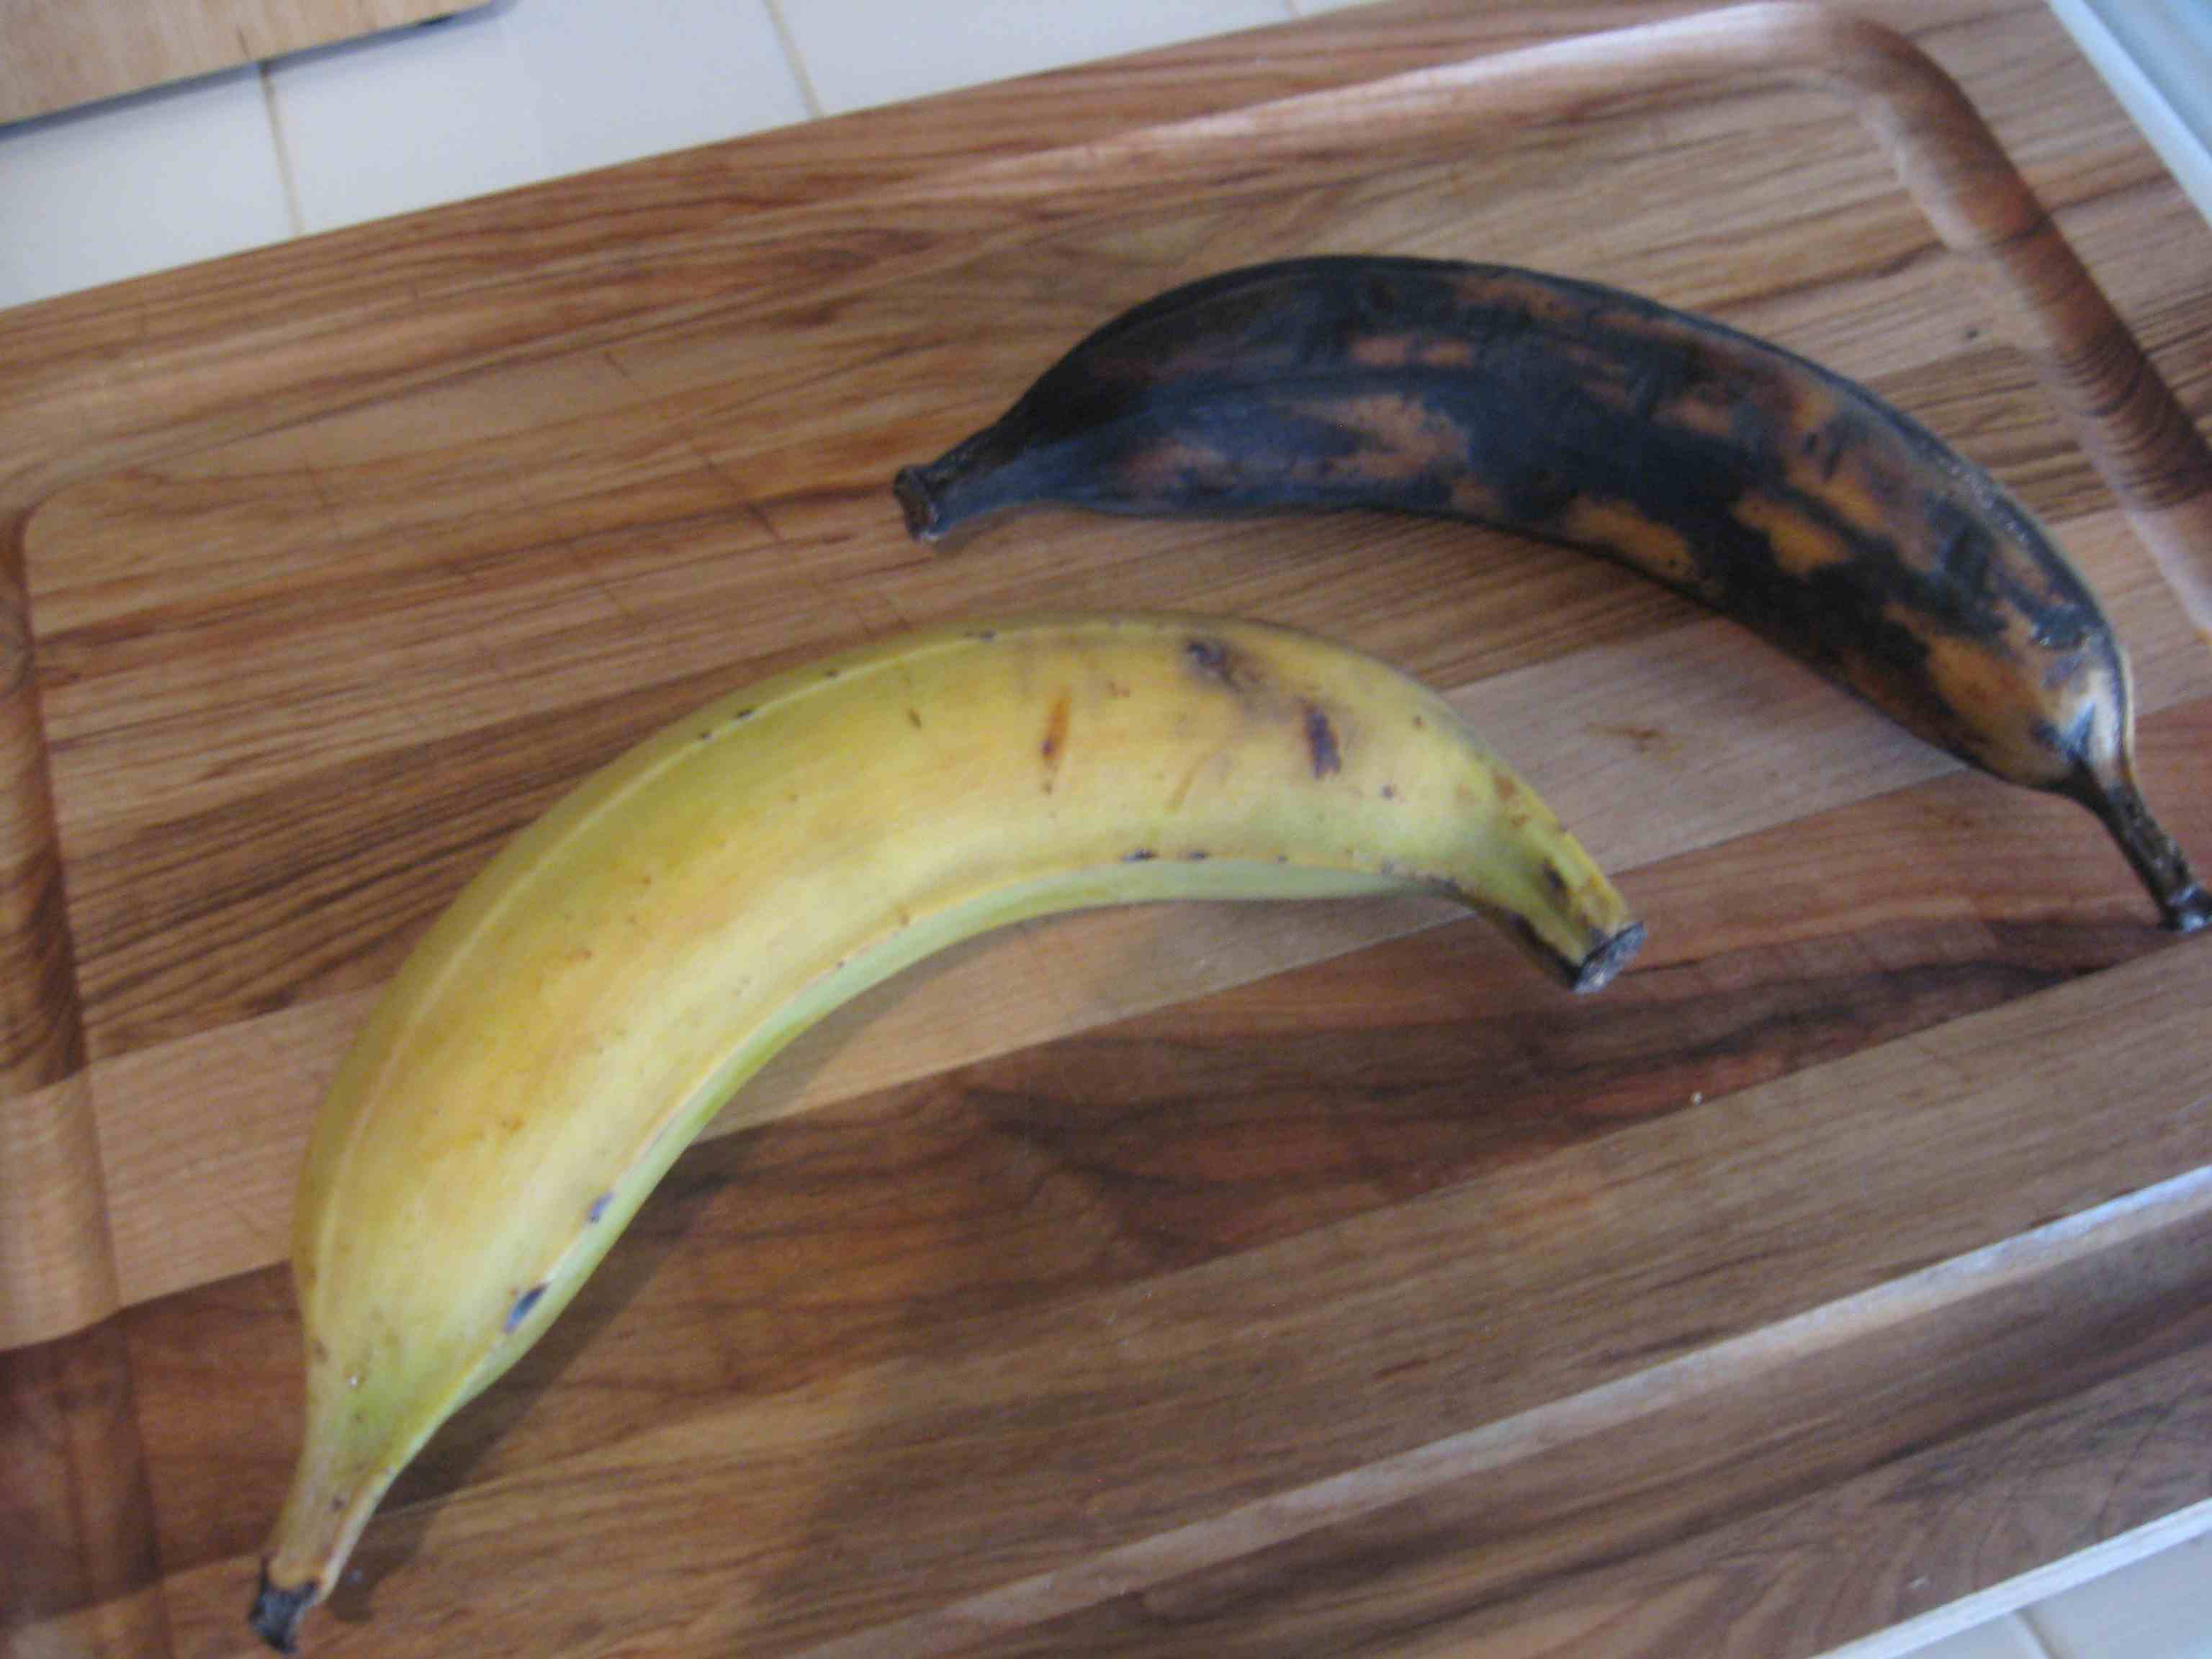 Ripe and over ripe plantains on a cutting board.